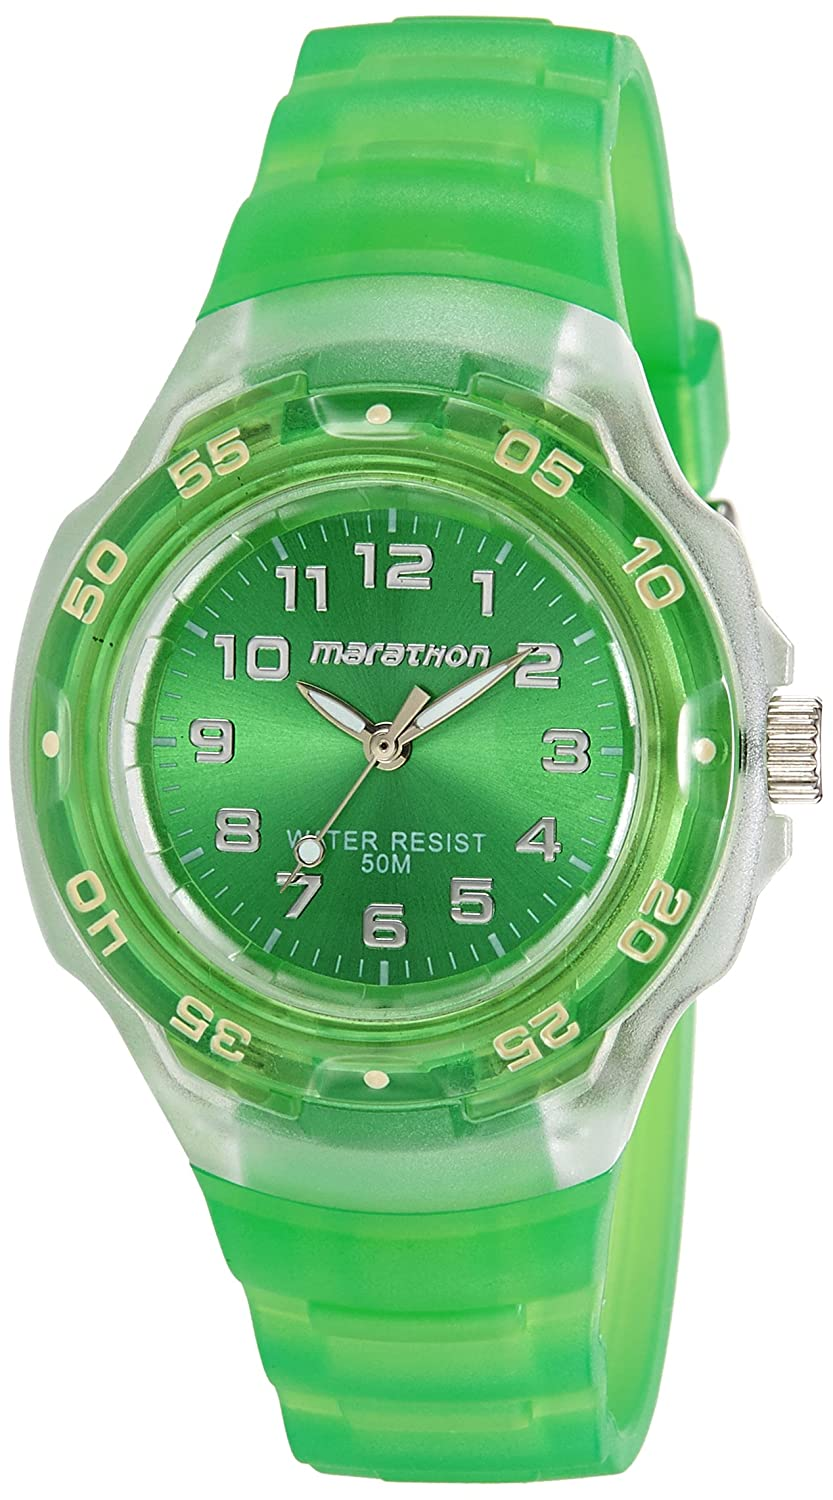 s with envy blog greenwithenvy you green will bob rolex that make watches info